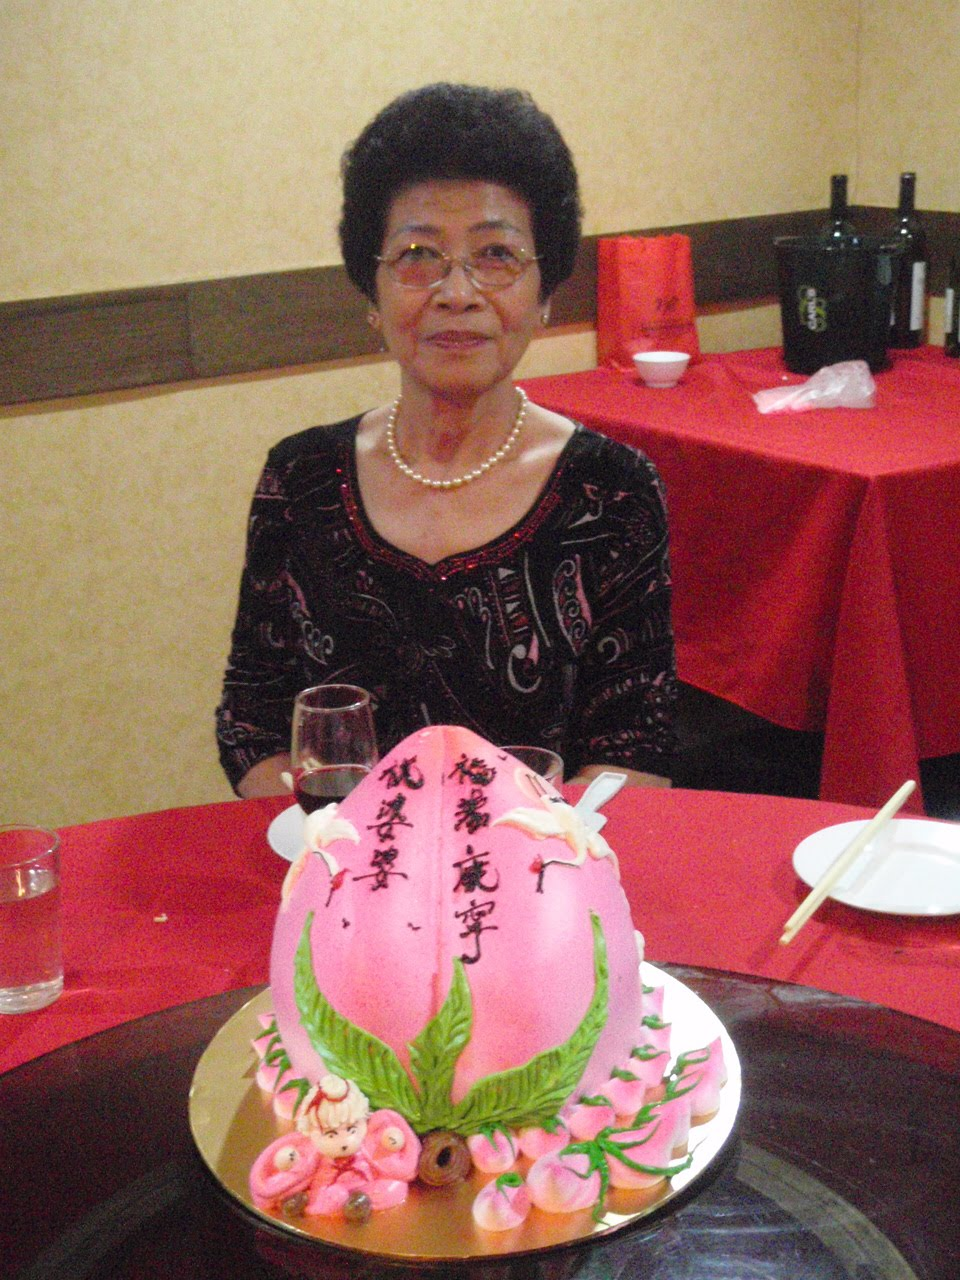 My Grandma Sayings: Happy Birthday To Grandma! ♥ - Nicole Yie